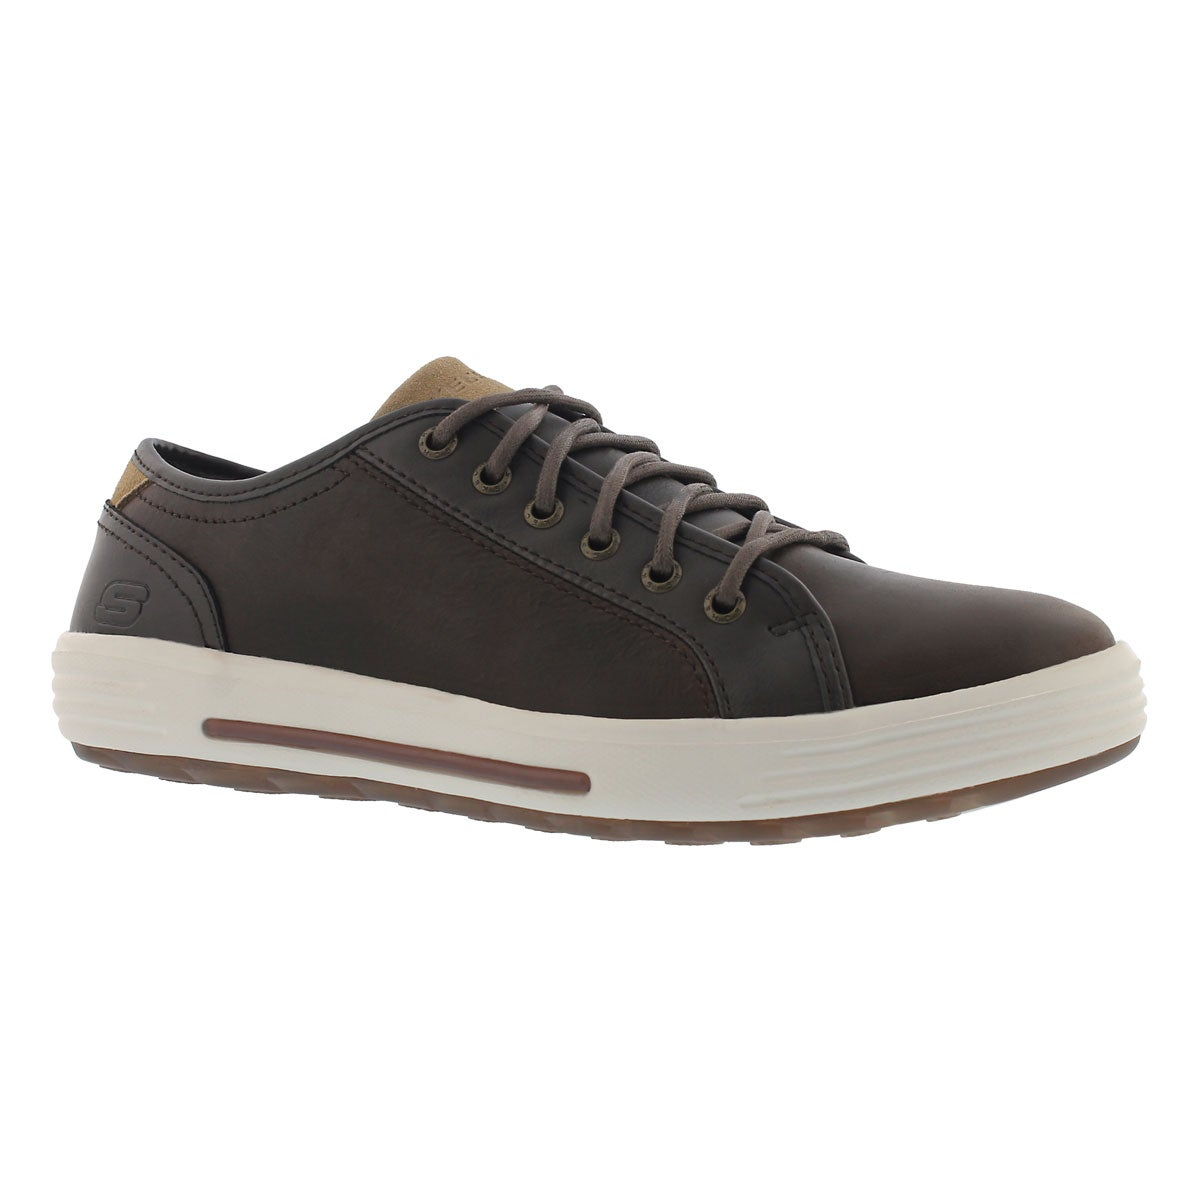 Men's PORTER RESSEN dark brown lace up sneaker